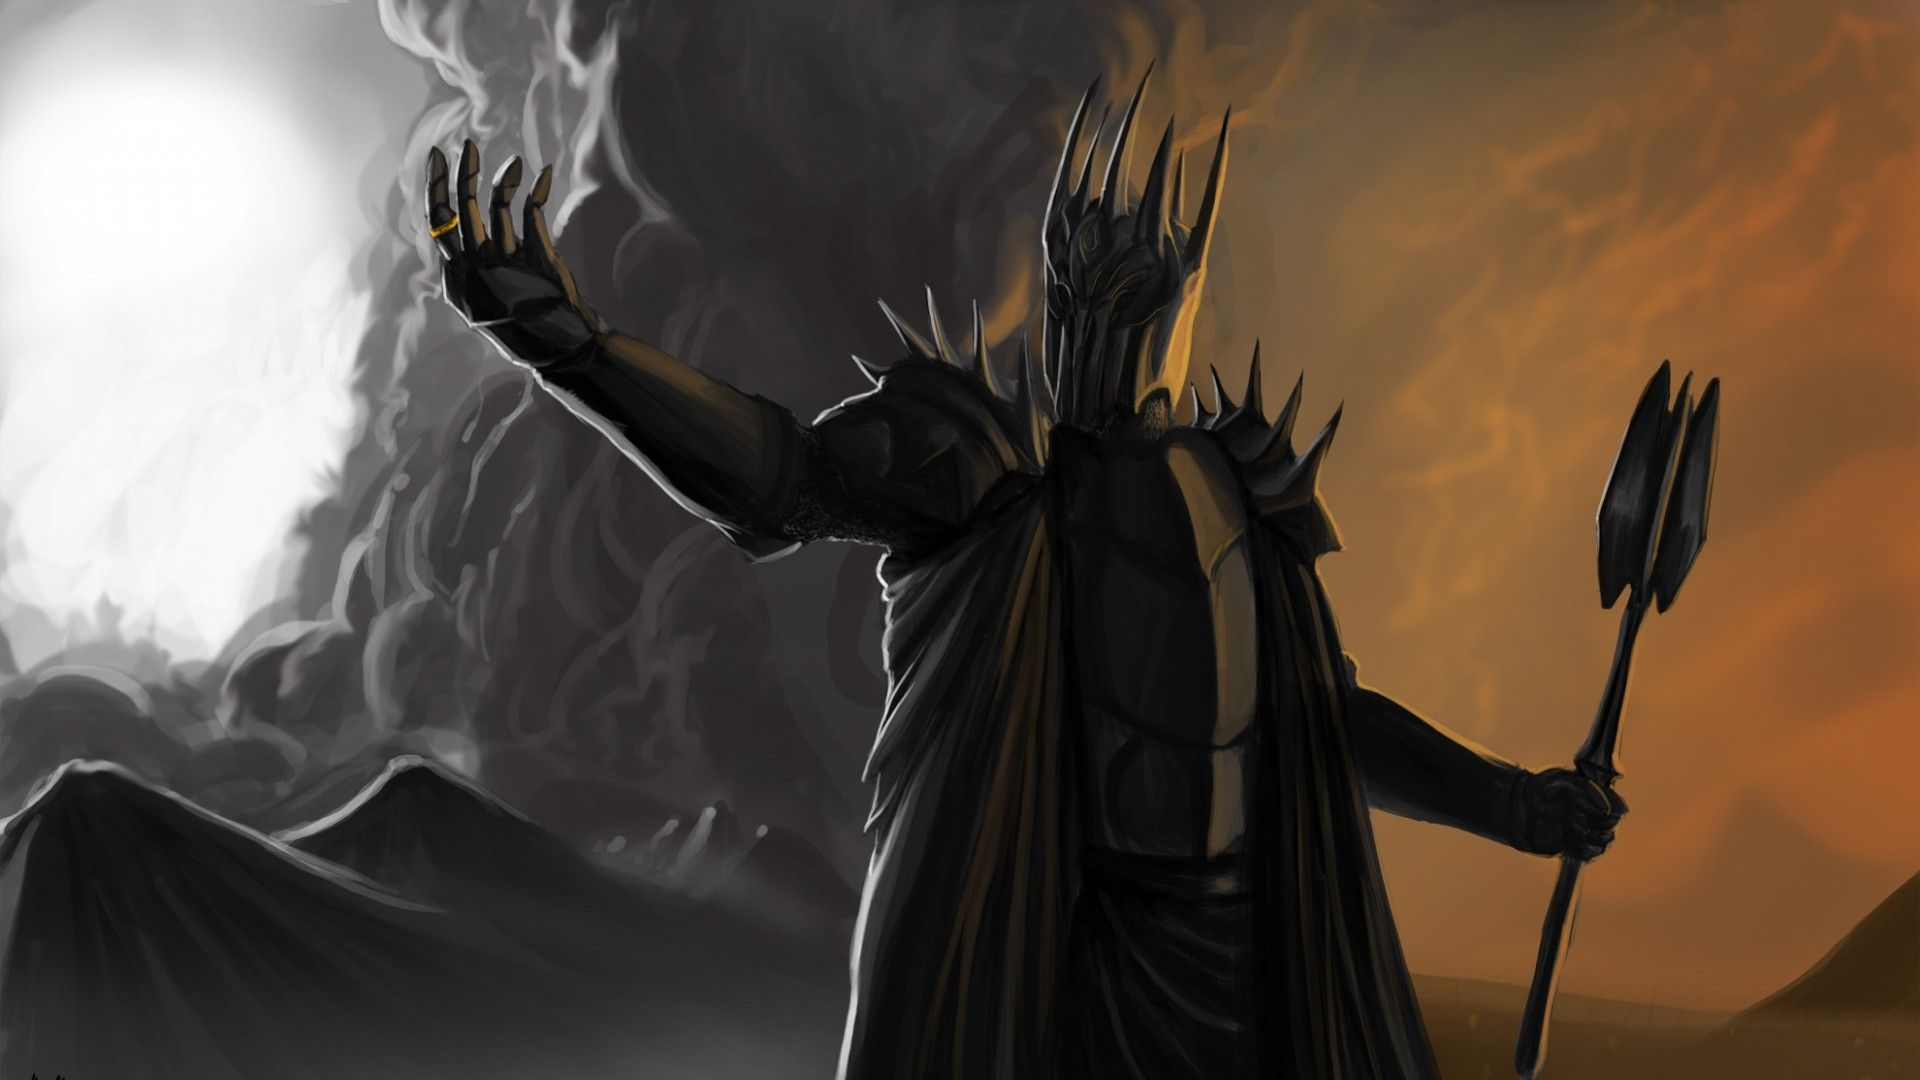 Nazgul On A Dragon Fantasy Artwork Dark Lord Fantasy Artwork Lord Of The Rings